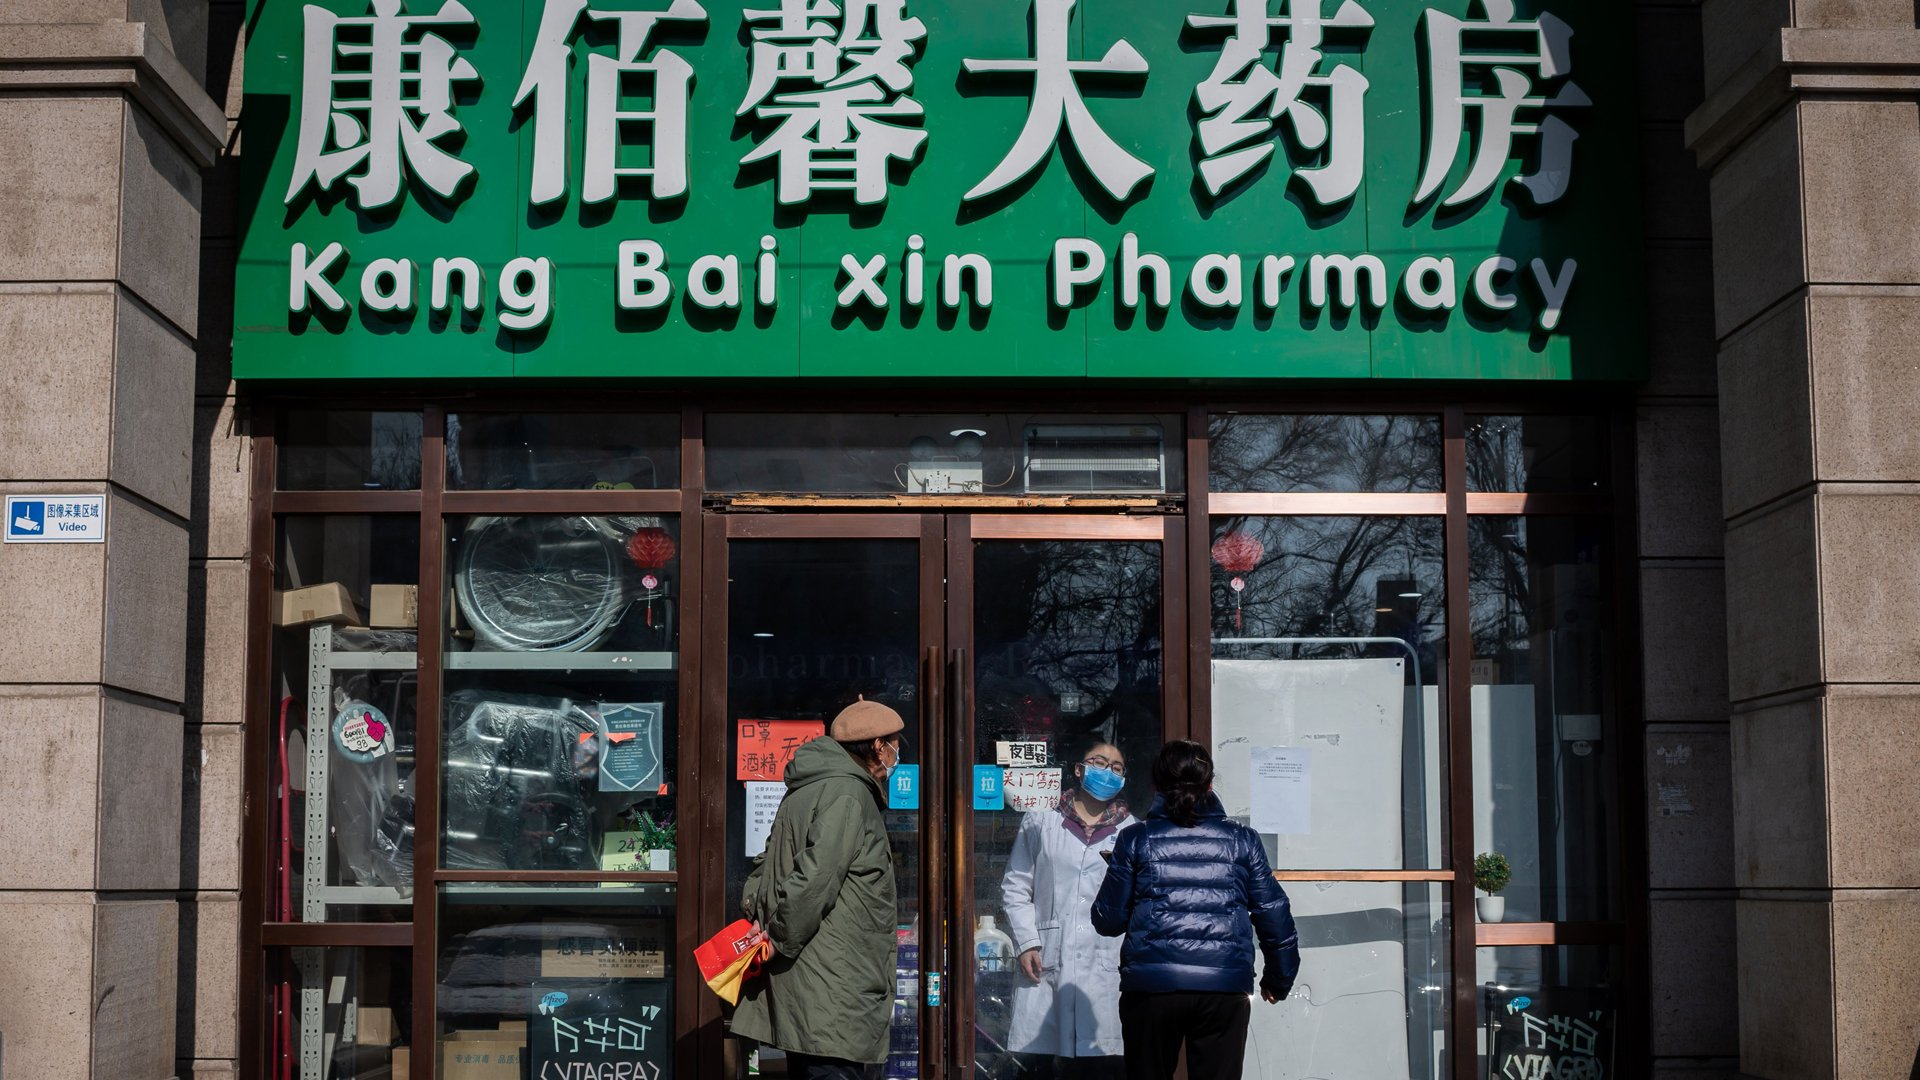 People wearing protective face masks and gloves stand outside a closed off Pharmacy as they try to get face masks, gloves and hand sanitizer gel in Beijing on February 15, 2020. (Credit: Nicolas Asfouri/AFP/Getty Images)